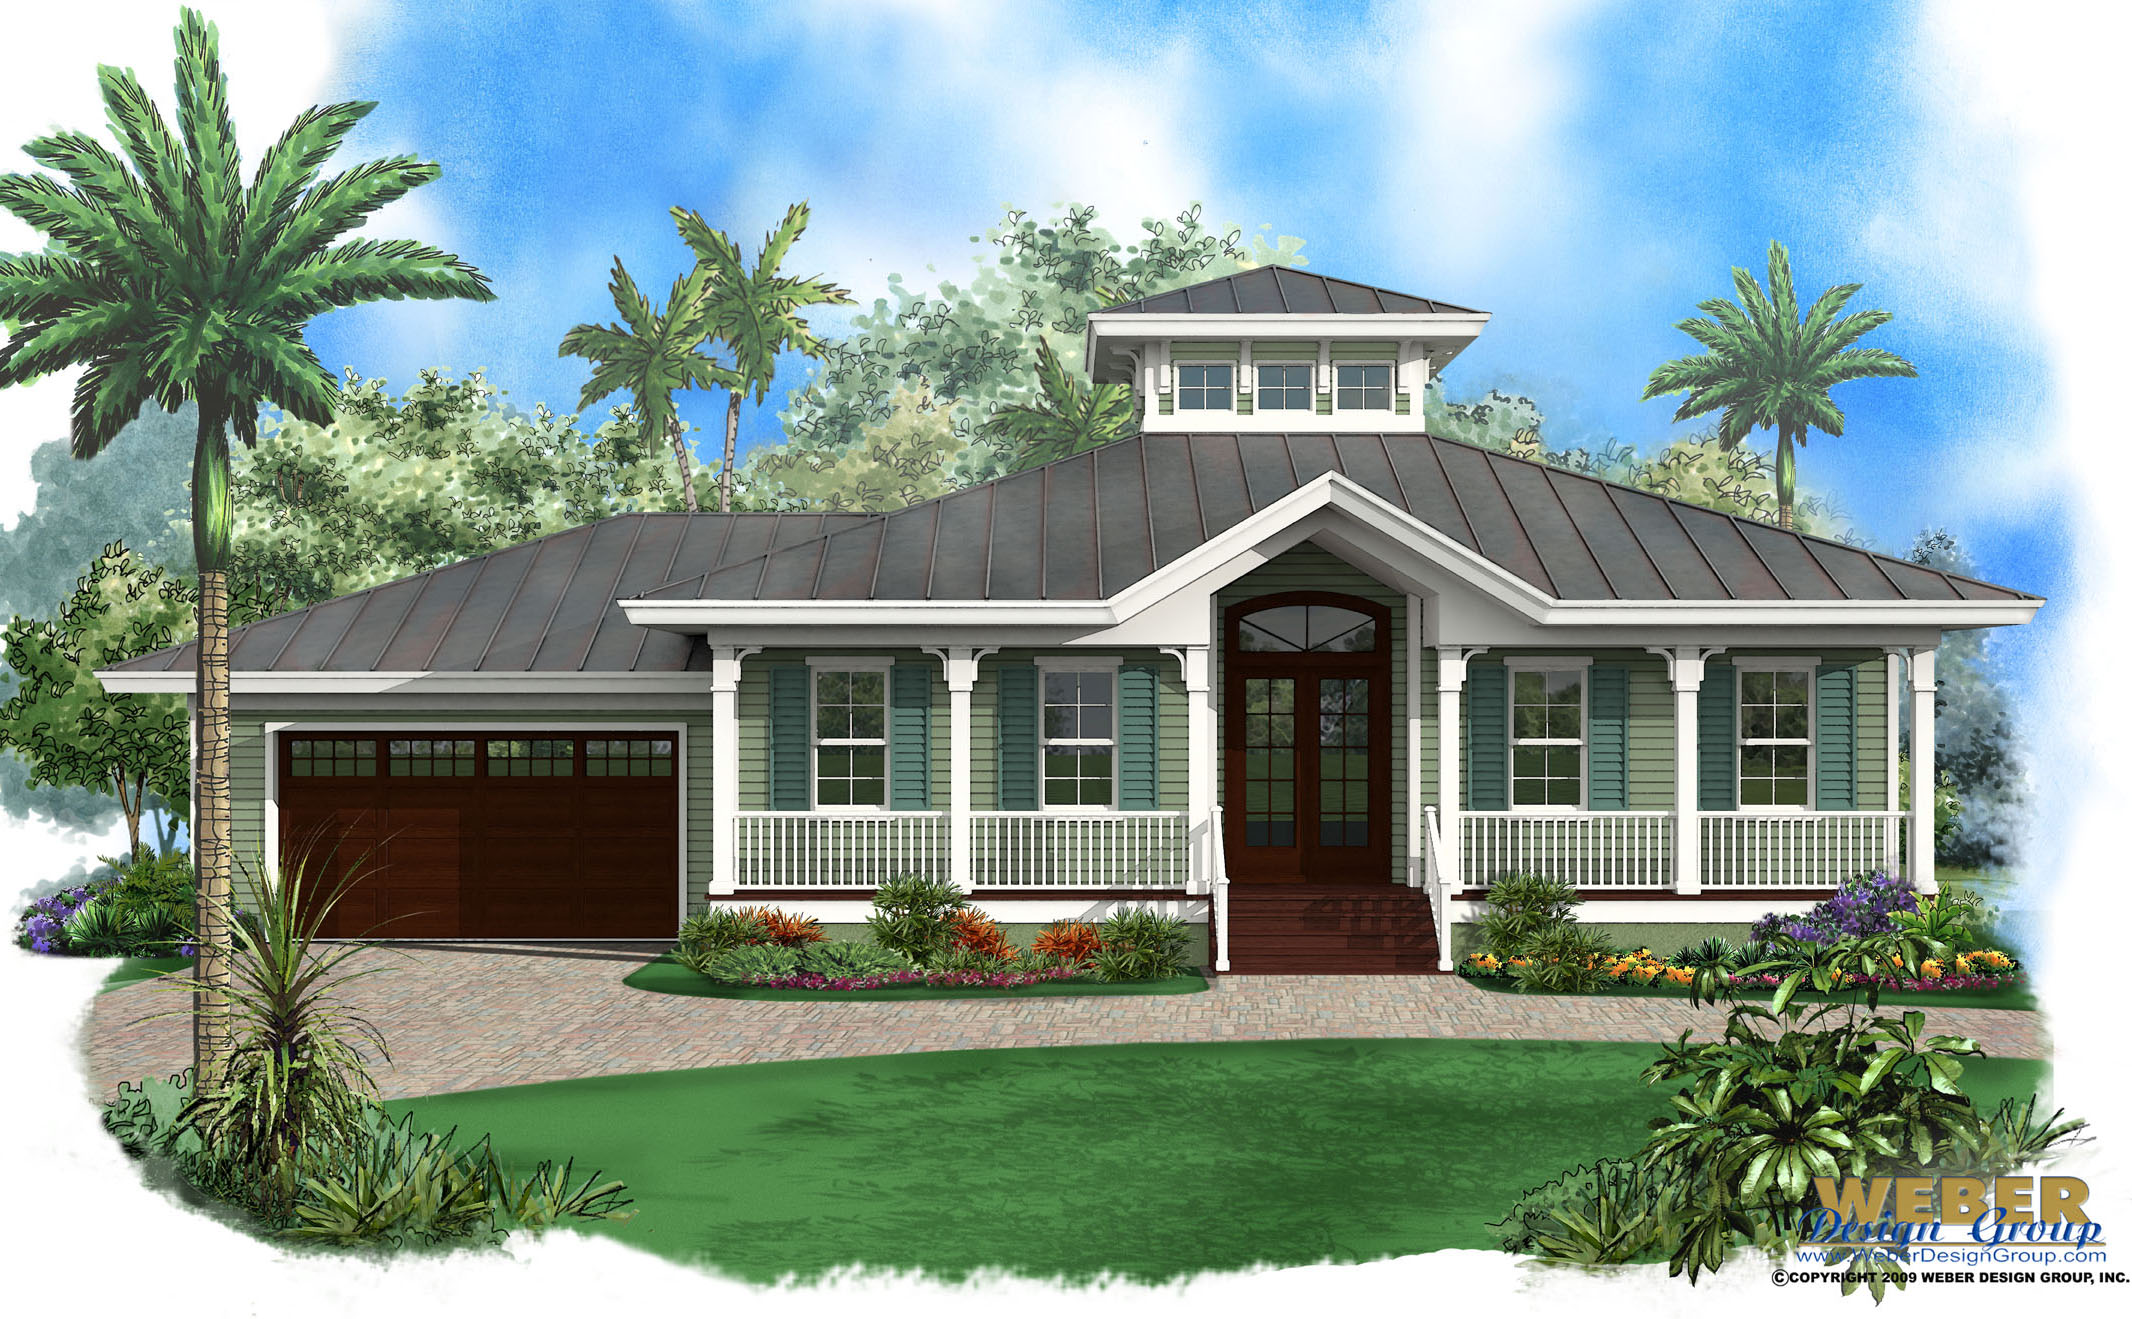 Olde Florida House Plans: Old Florida er Style Home Floor Plans on paul rudolph homes, south west homes, interior design homes, florida bungalow homes, florida lifestyles homes, florida villa homes, florida house plans, florida family homes, florida real estate homes, architectural record homes, florida luxury homes, florida abandoned homes, florida coastline homes, florida style house, veranda homes,